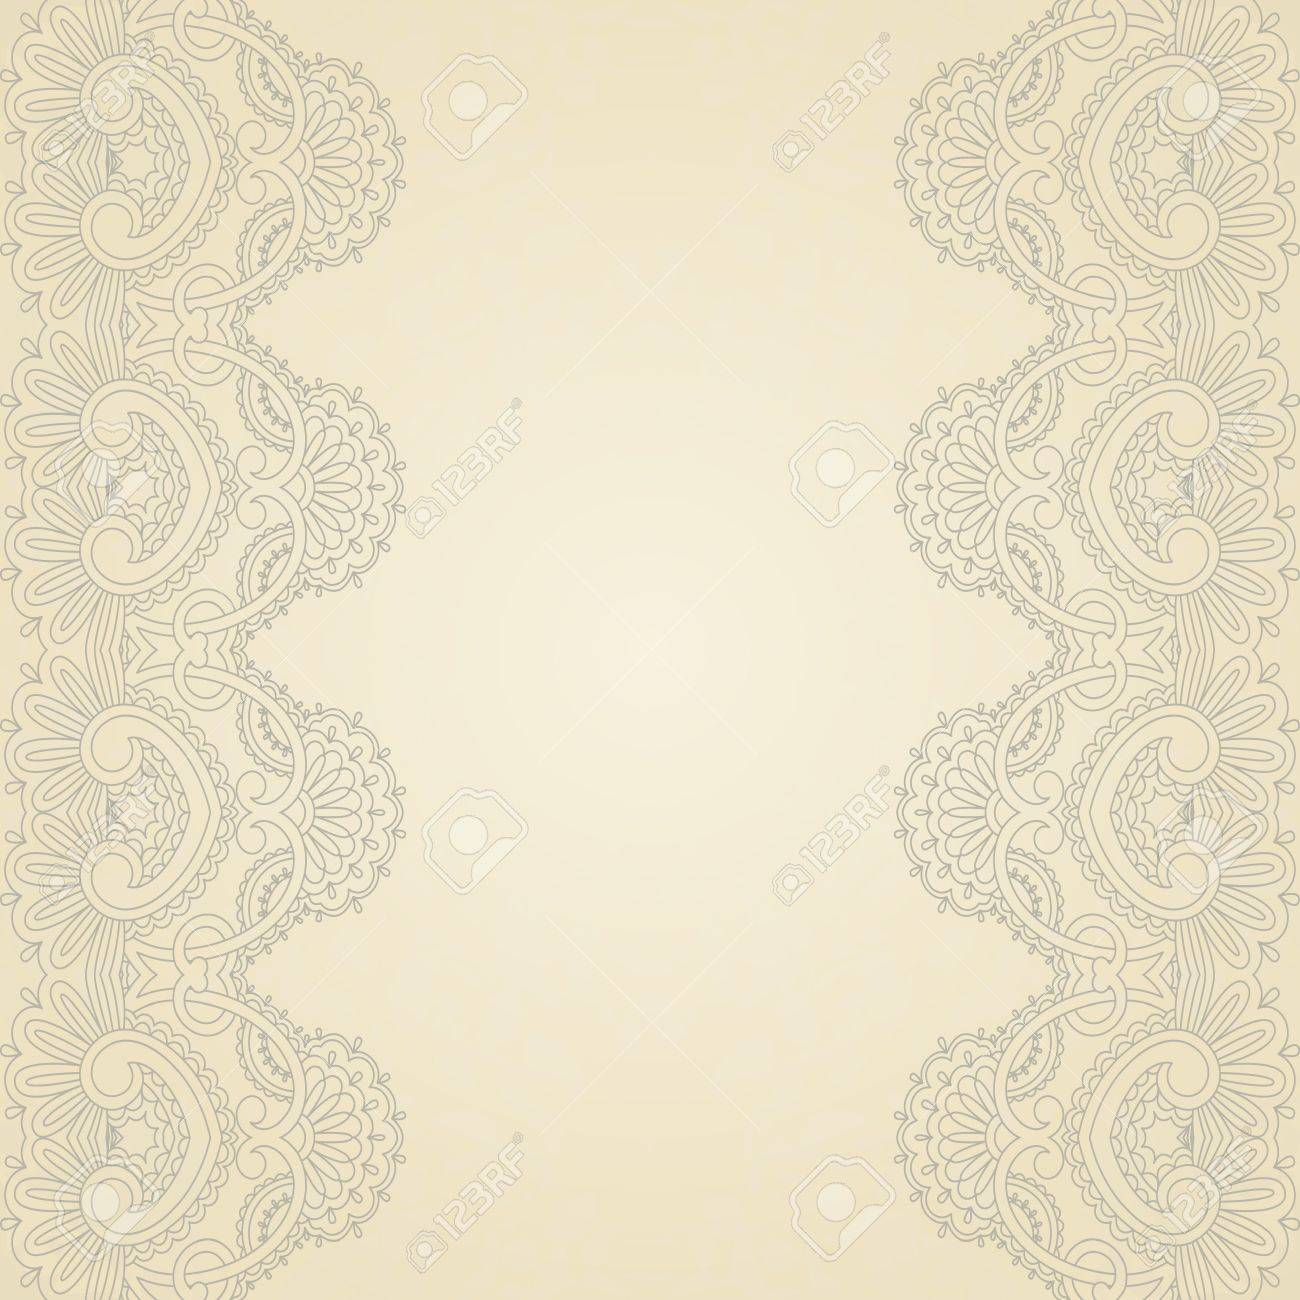 illustration with vintage pattern for print, embroidery Stock Vector - 16603102